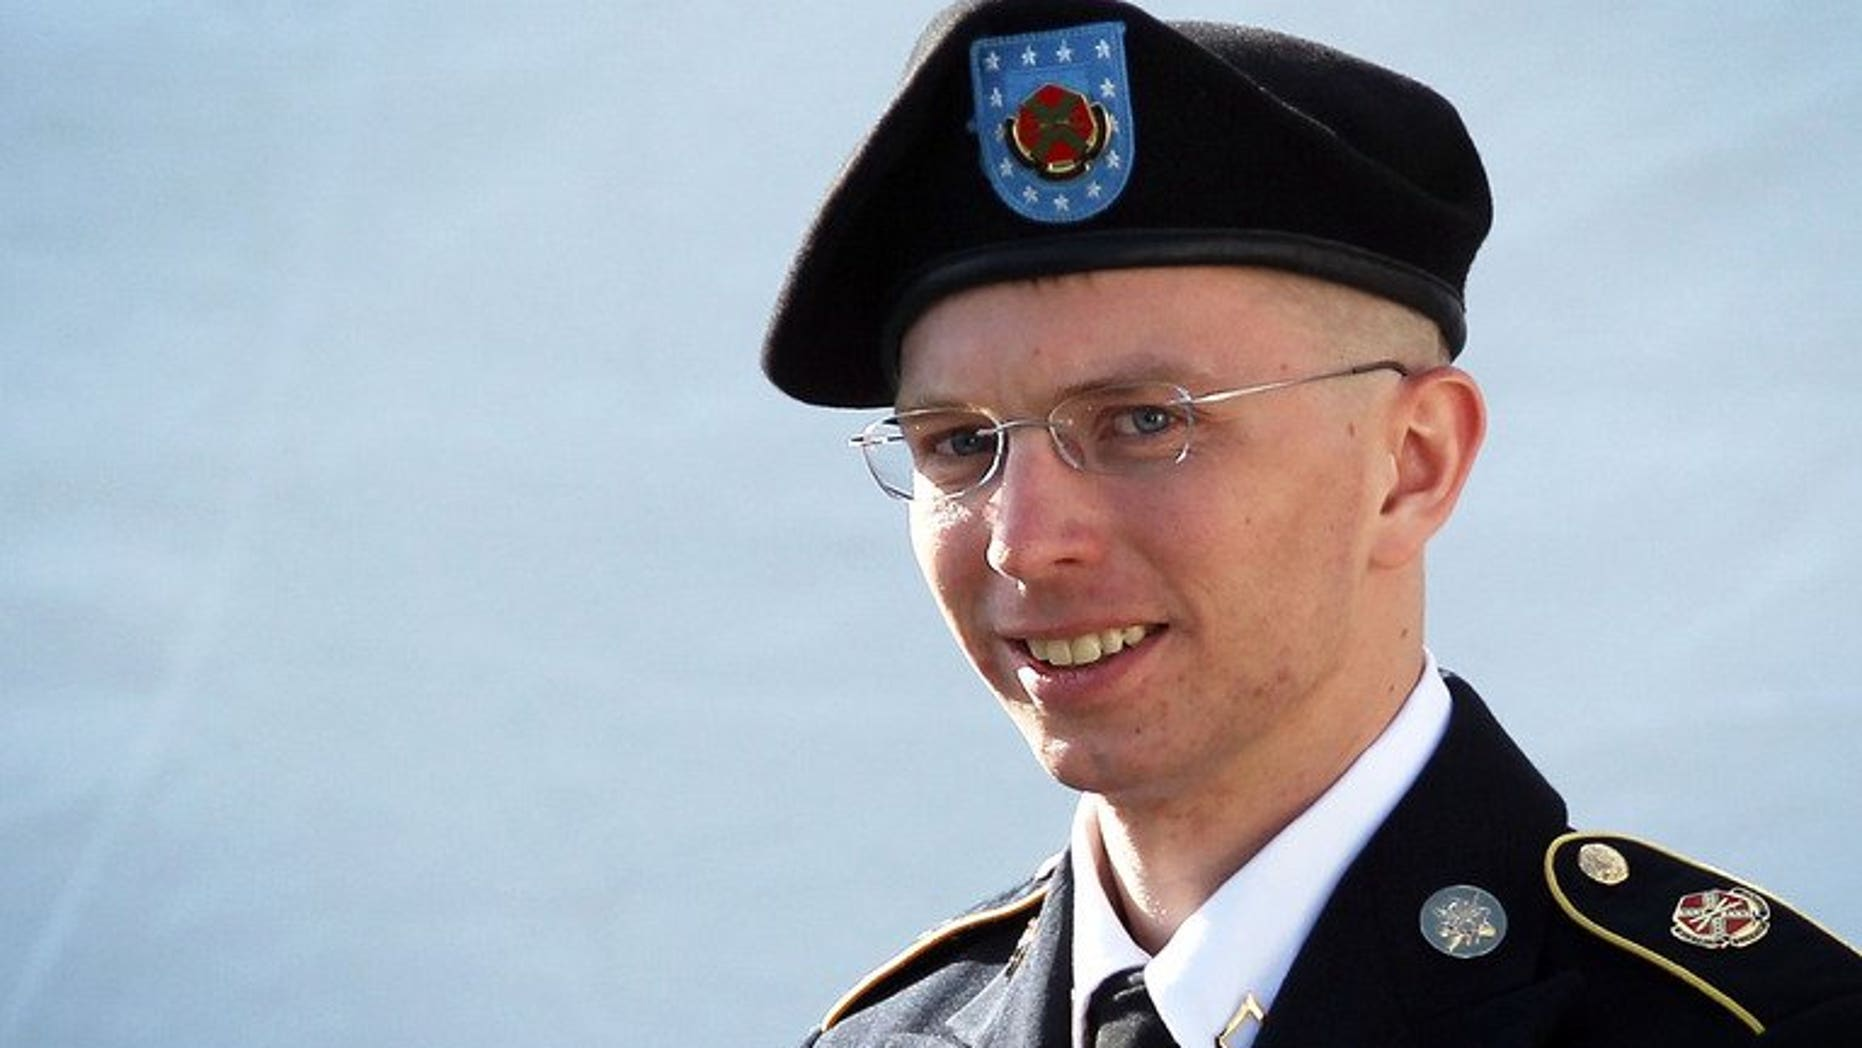 U.S. Army Private Bradley Manning is escorted as he leaves a military court at the end of the first of a three-day motion hearing June 6, 2012 in Fort Meade, Maryland. Supporters of Manning, the US soldier convicted of espionage for leaking secret files to WikiLeaks, presented a petition to the Nobel Institute on Monday backing his nomination for the Nobel Peace Prize.